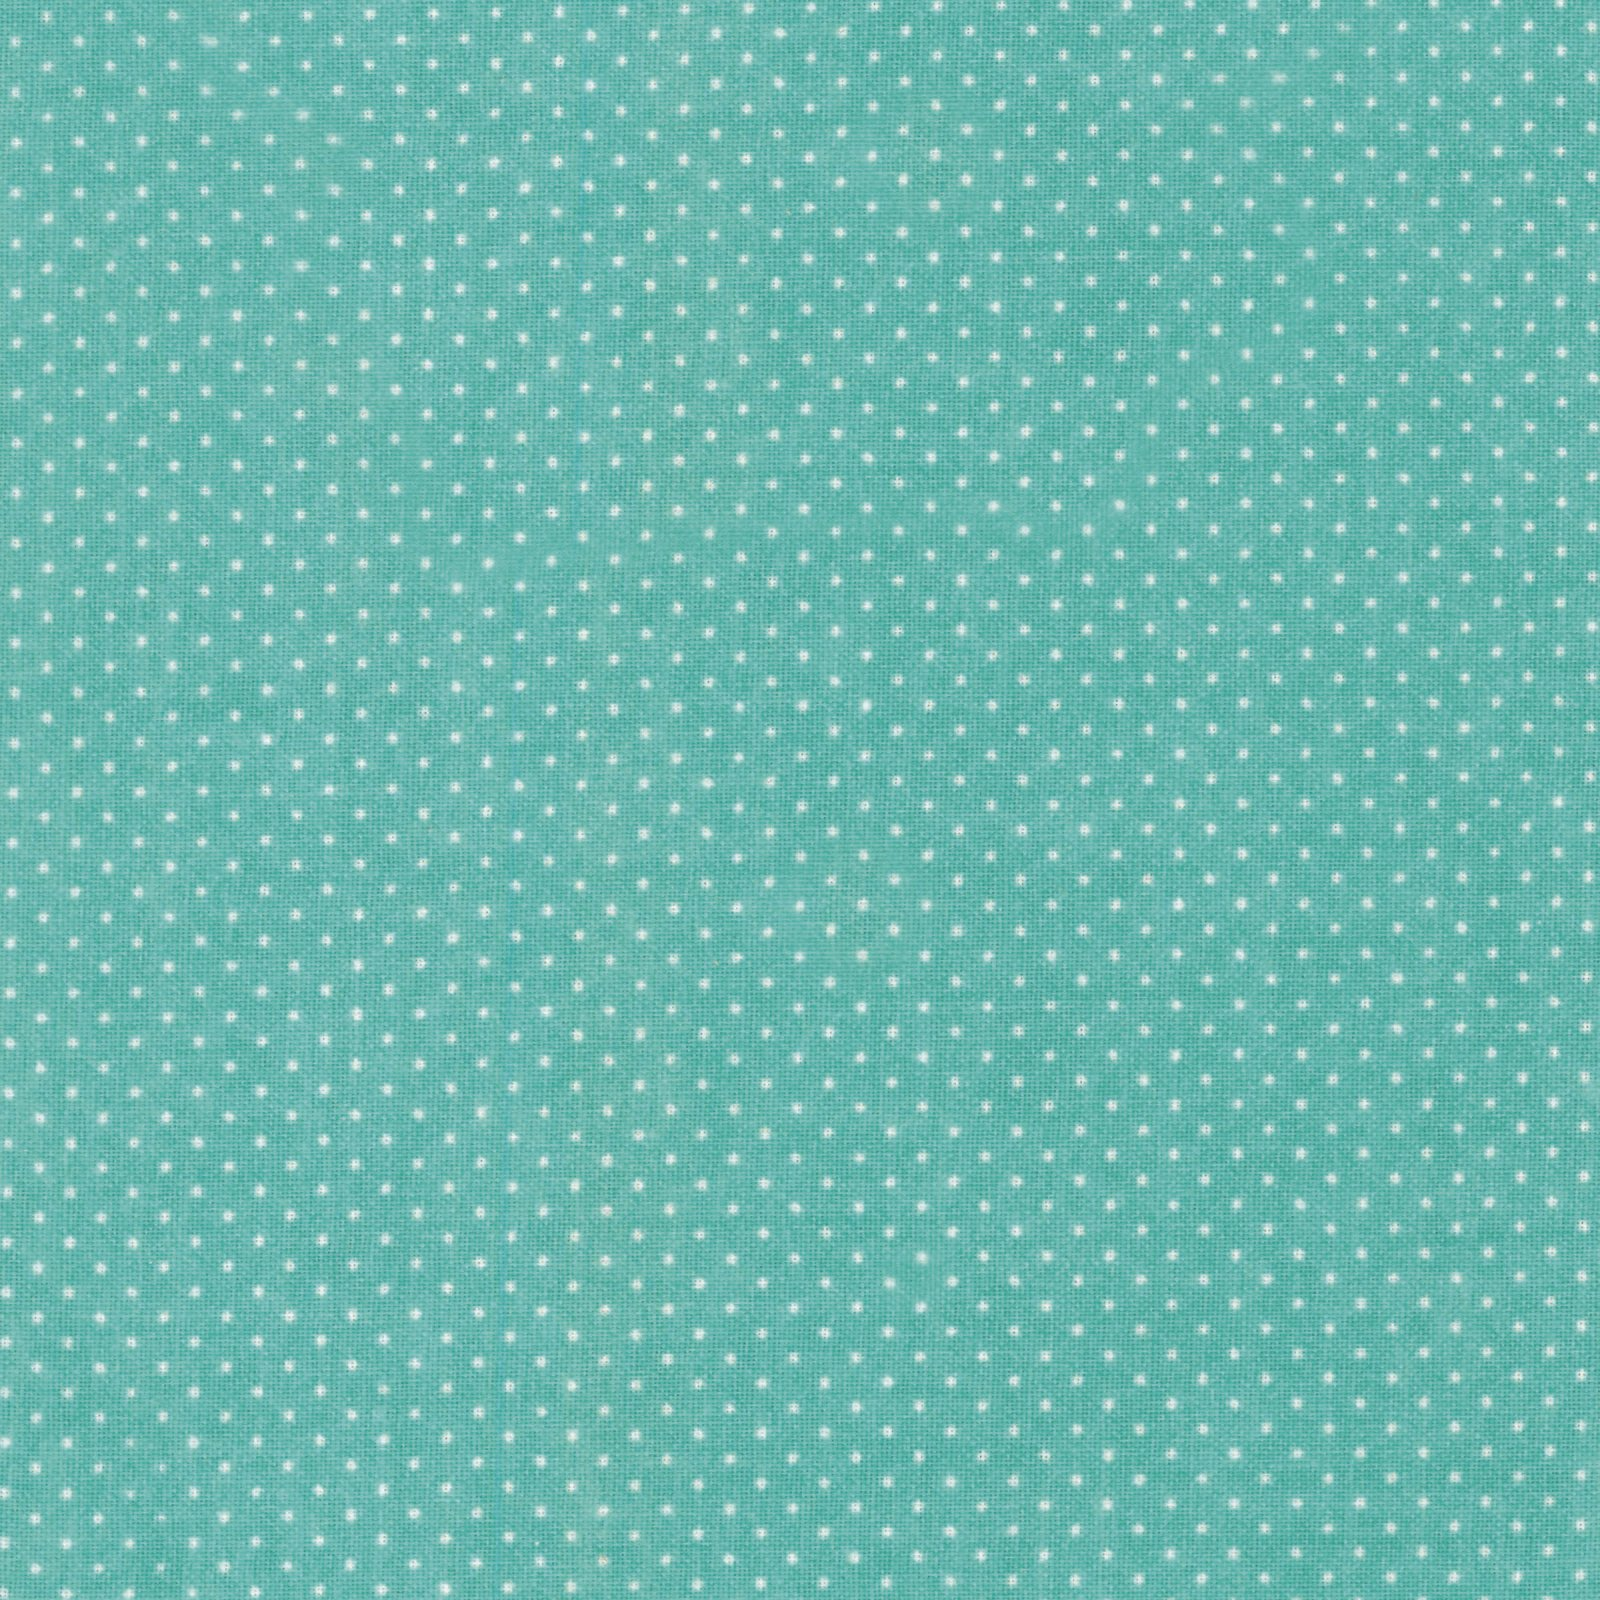 Fabric Palette Fat Quarter <br>Turquoise - Design may vary <br>MD-G-PC367